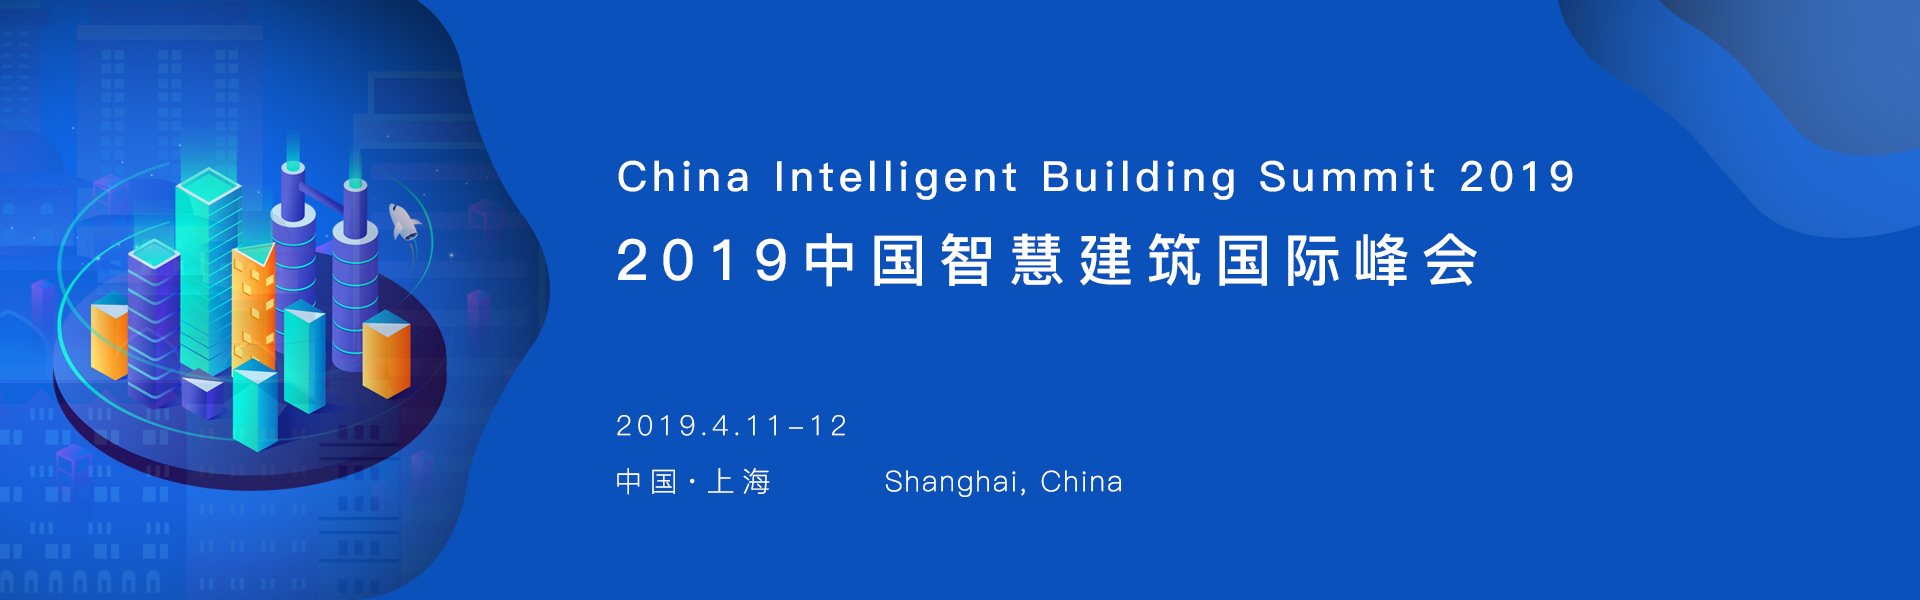 China Intelligent Building Summit 2019